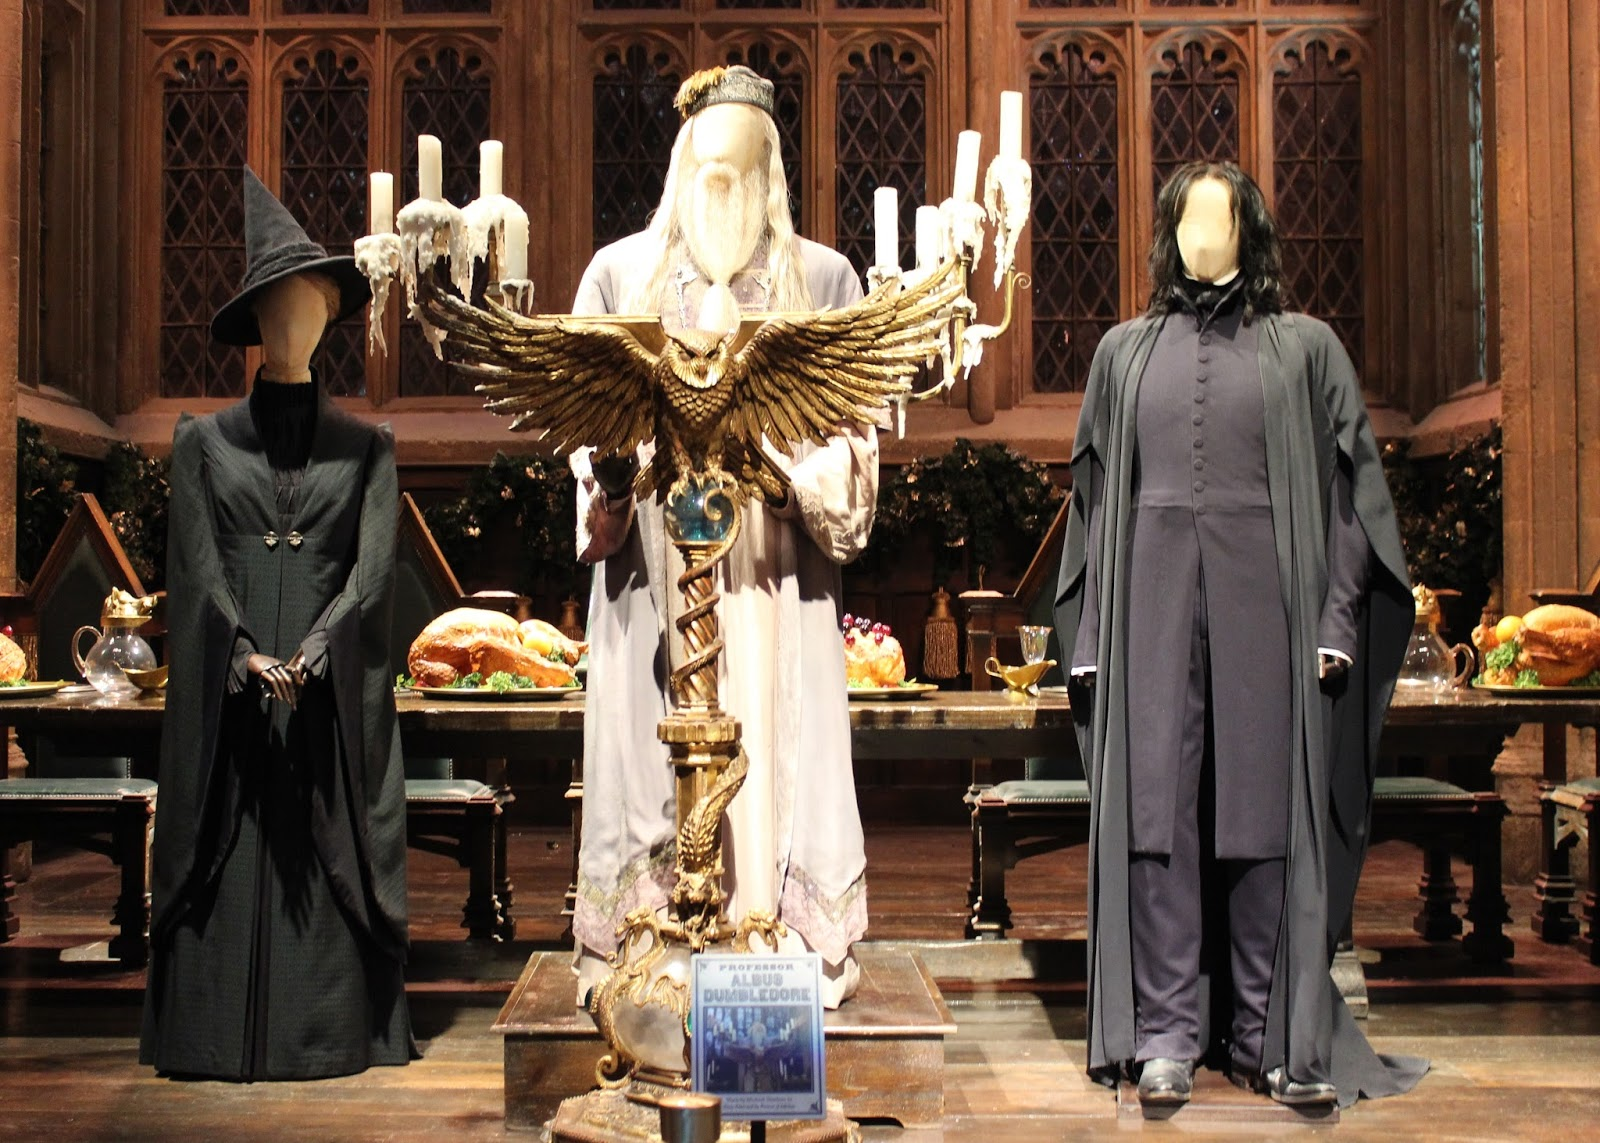 Harry Potter studio tour london great hall and costumes